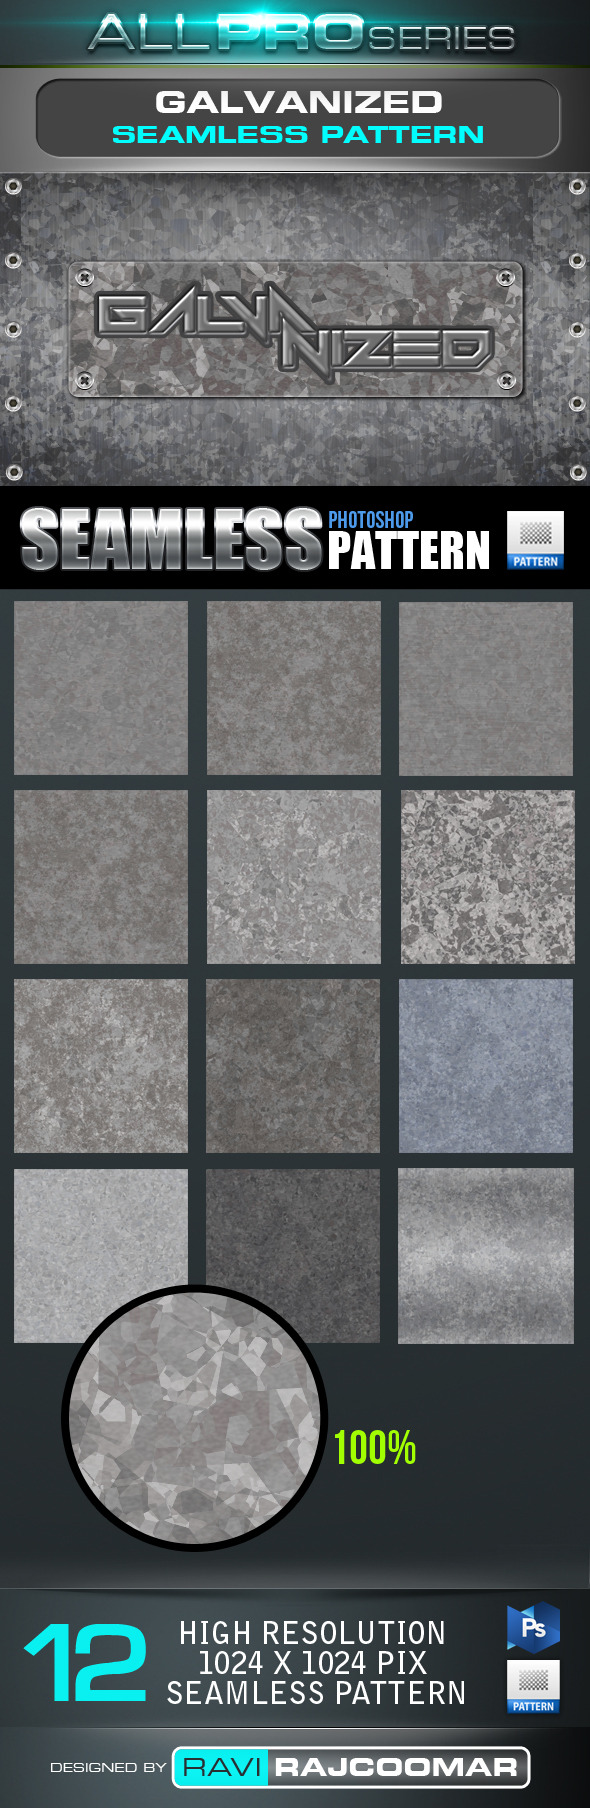 Galvanized Seamless-Tileable Pattern - Textures / Fills / Patterns Photoshop